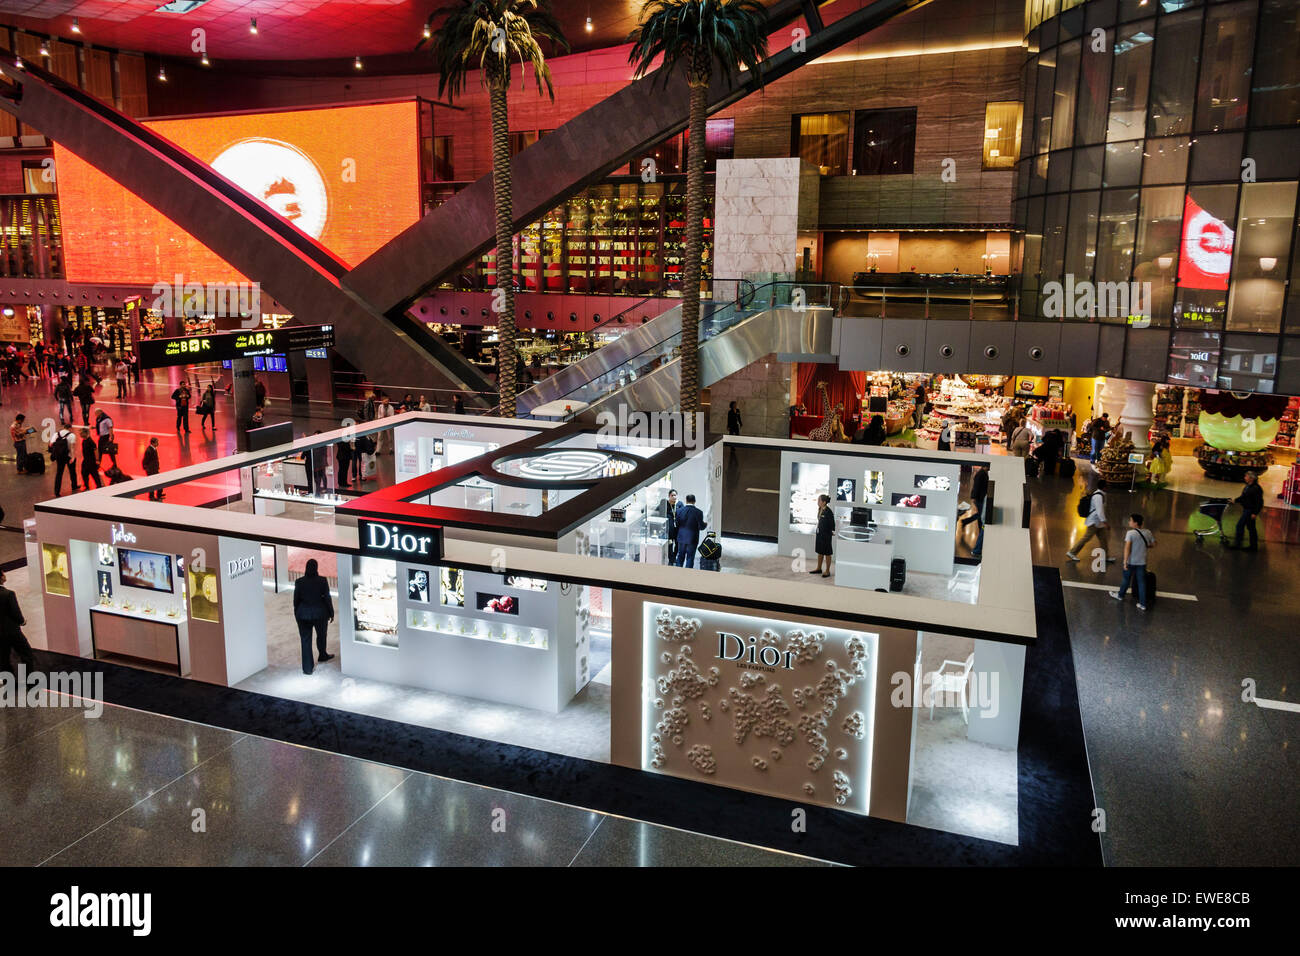 Qatar, Doha, Middle East, Eastern, Hamad International Airport, DOH, terminal, concourse, gate area, interior, shopping shopper shoppers shop shops ma Stock Photo